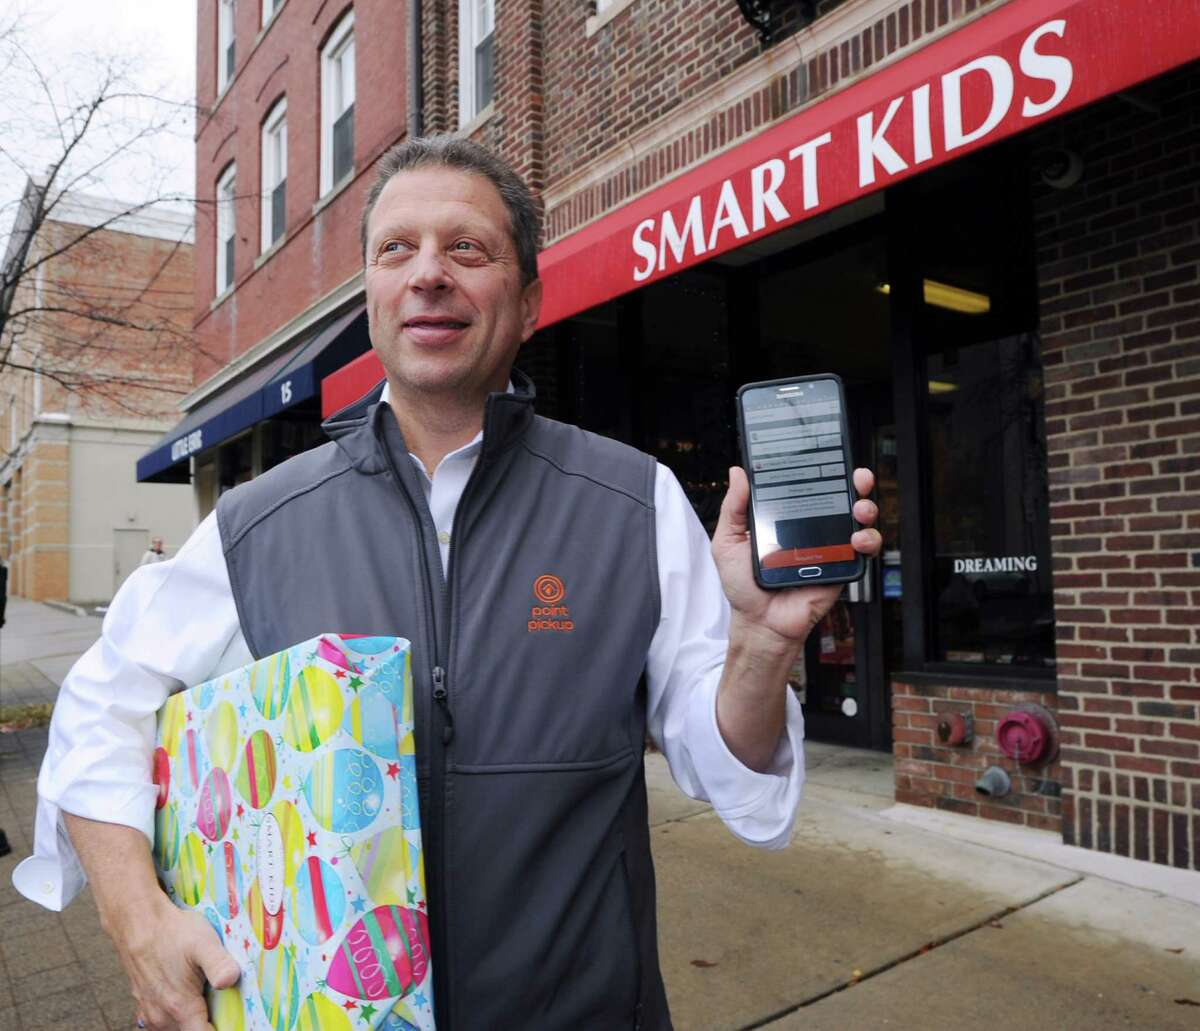 """Founder & CEO of Point Pick-Up Technologies, Inc., Tom Fiorita, holds up his mobile device displaying his company's app along with a package outside the Smart Kids Toy store on East Elm Street in Greenwich , Conn., Thursday, Nov. 12, 2015. Fiorita's tech start-up is a facilitator for local same-day delivery of packages. According to the company's website, pointpuckup.com, """"connects folks that need stuff delivered with Pickup Partners who do the delivering."""""""